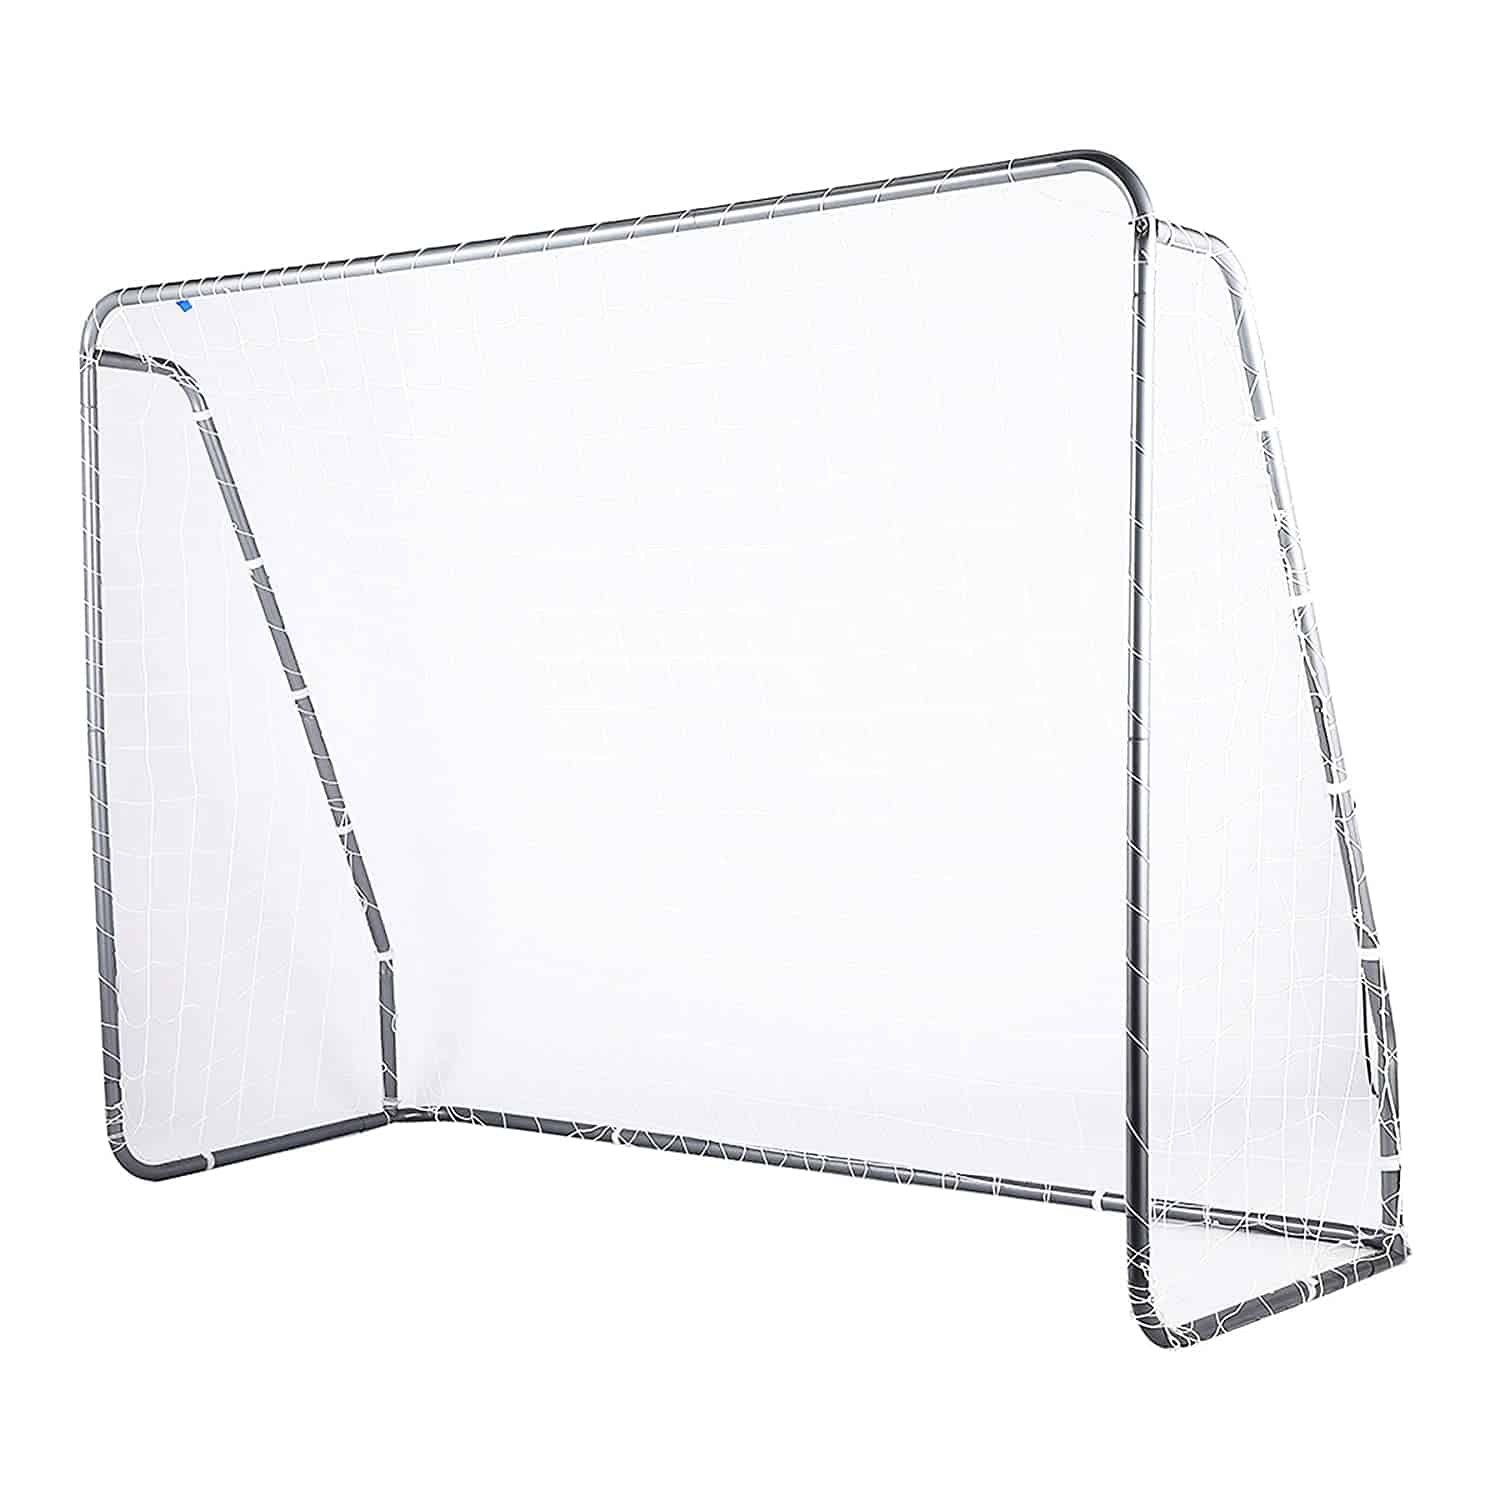 Pinty 2 in 1 Soccer Goal for Kids